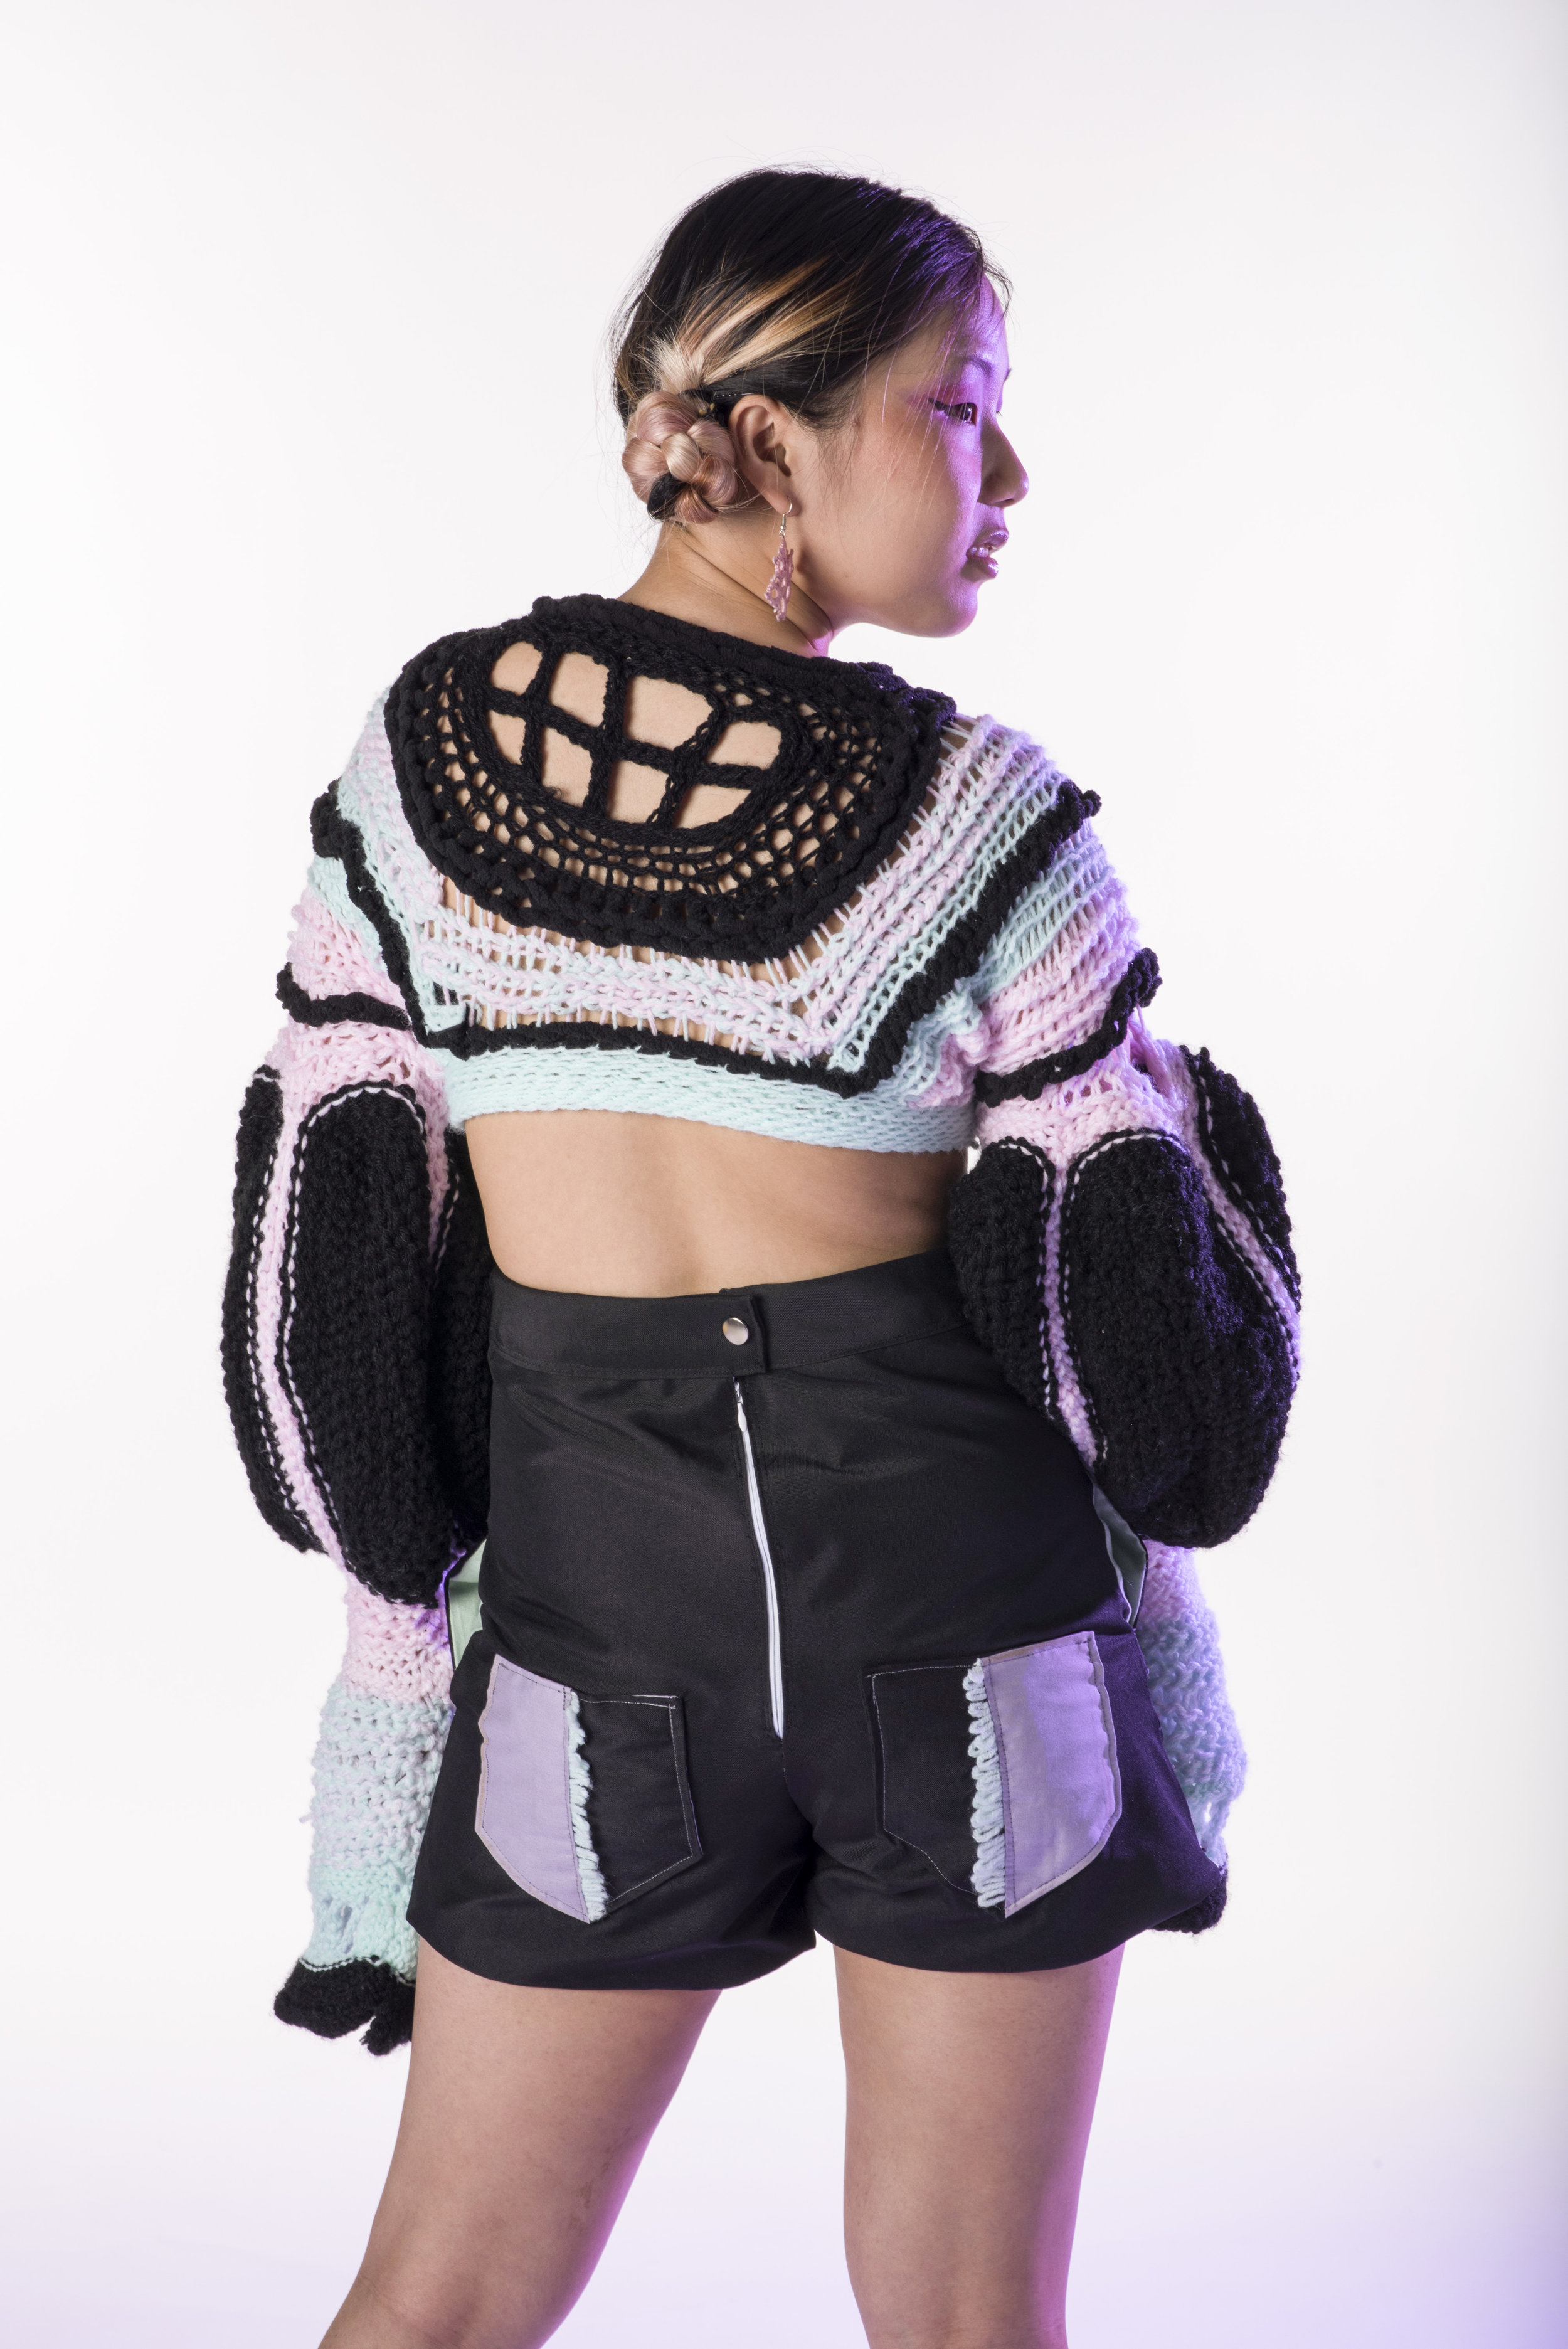 ZENI-edgy, downtown, trendy - Crop Top Crochet Sweater (acrylic yarn)Darty Shorts ( nylon, cotton, polyester)Tatted Lace Earrings (thread floss)